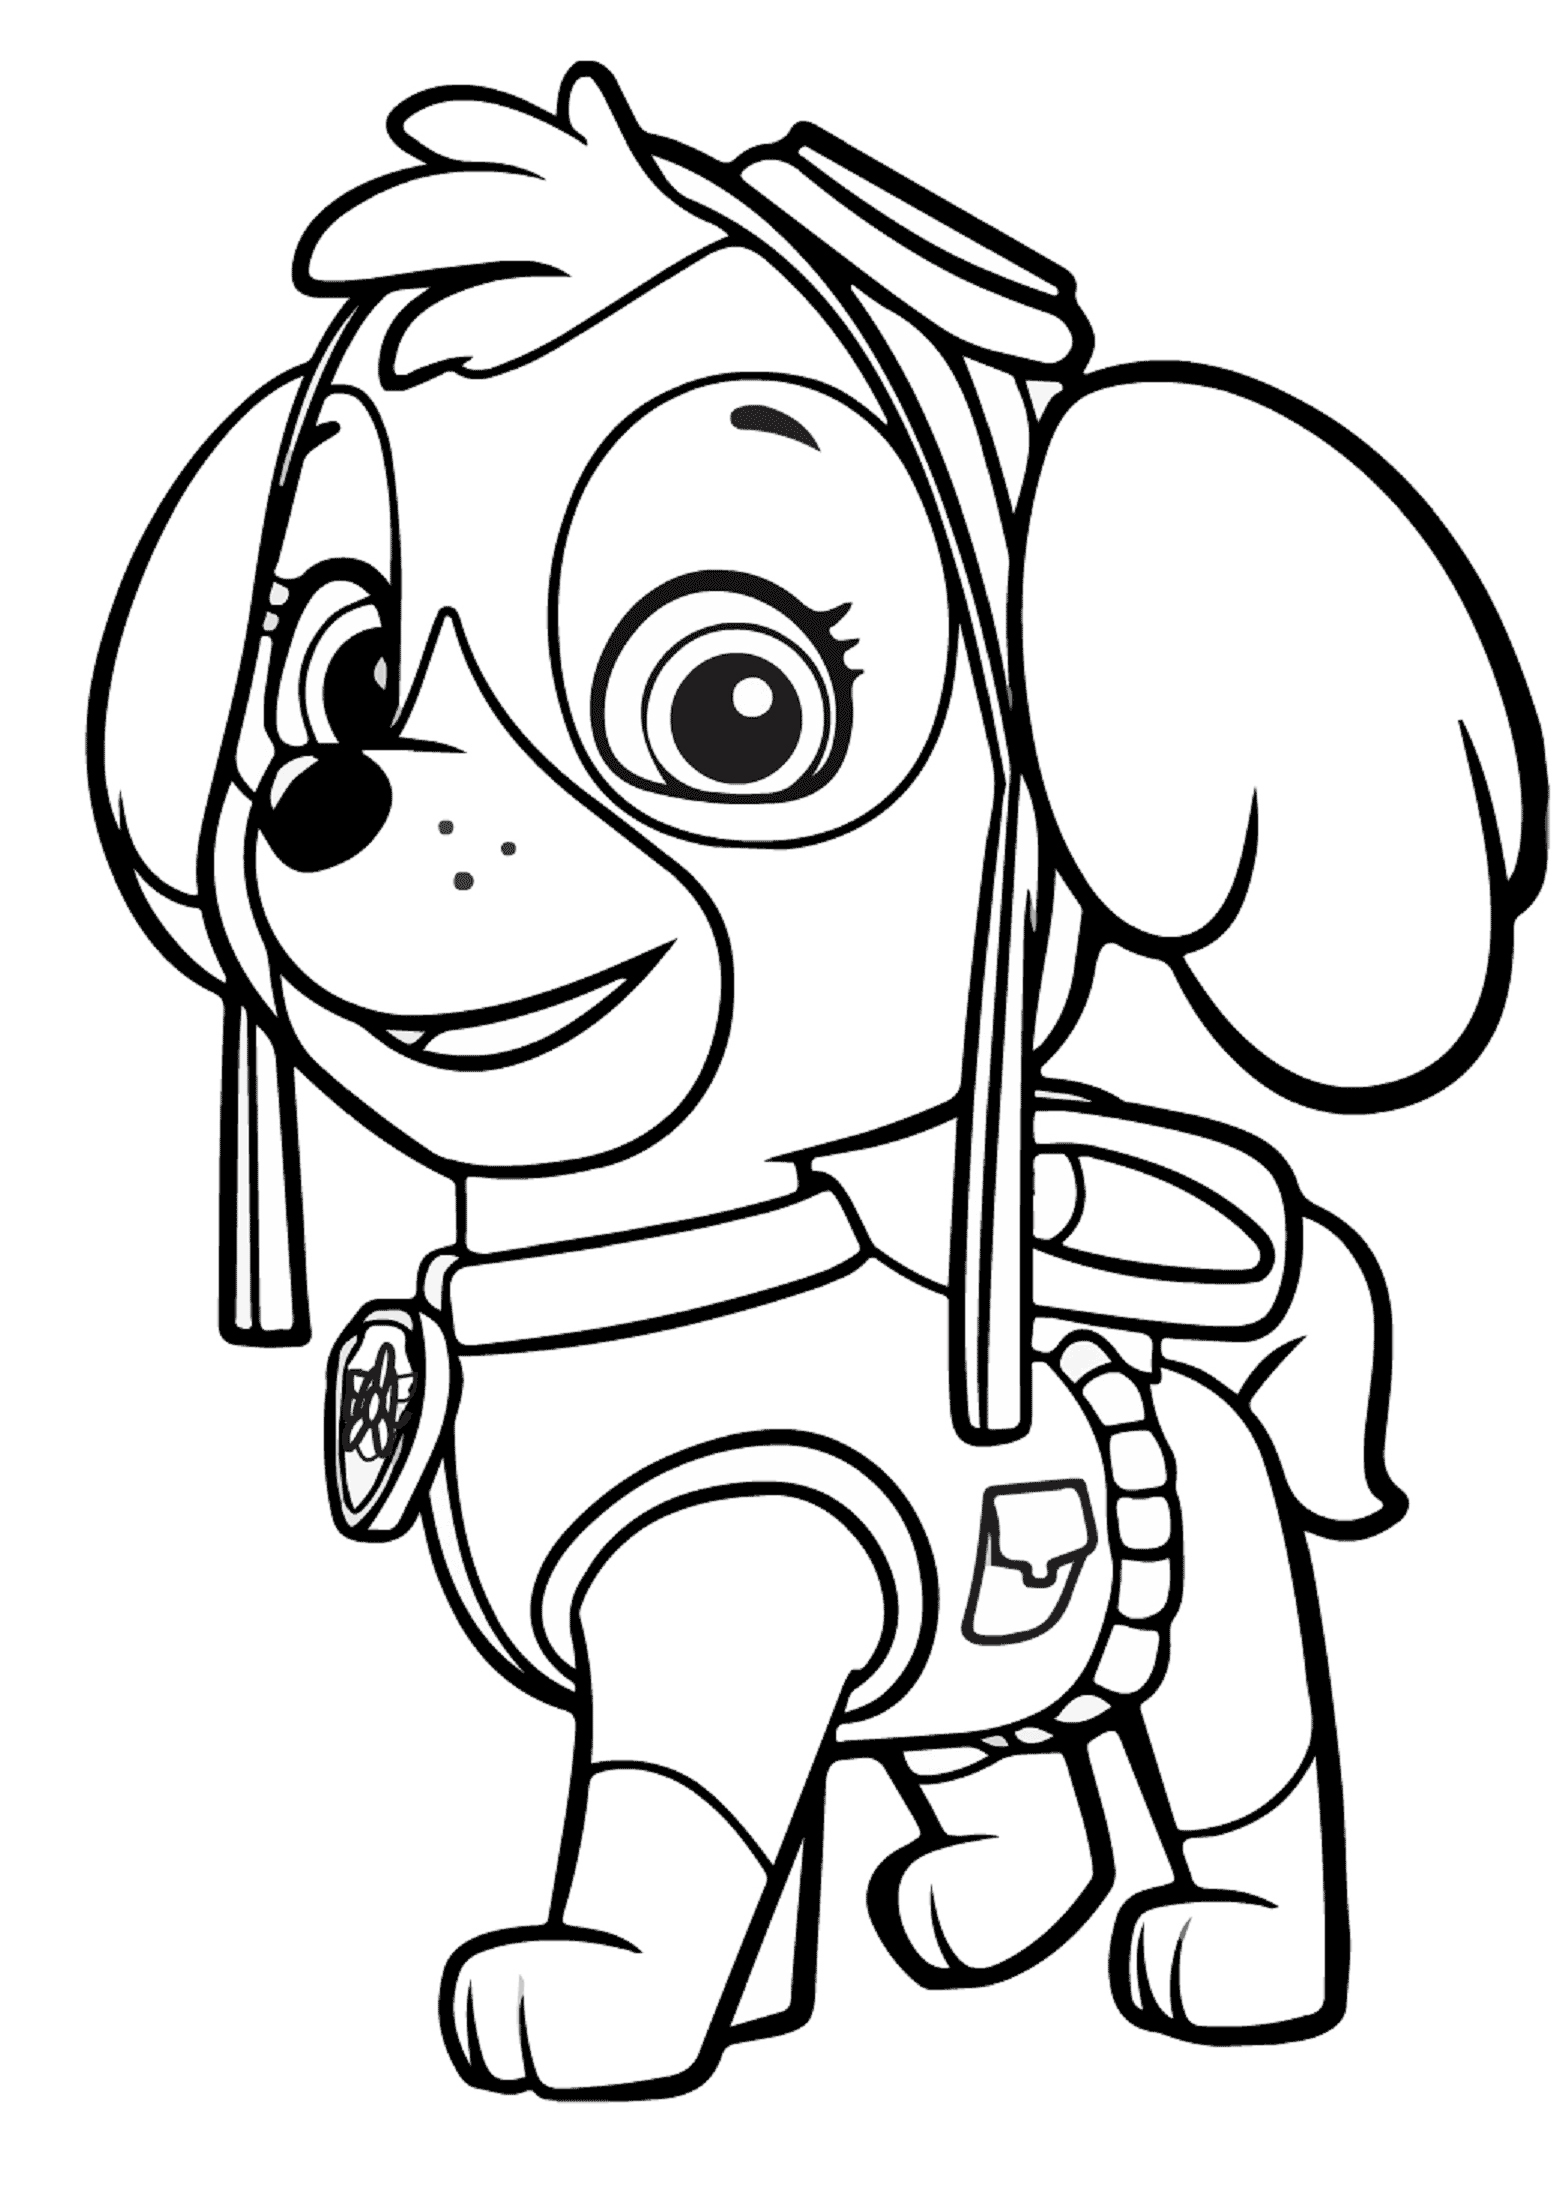 Deposit products and related services are offered by jpmorgan chase bank, n.a. Dibujos de La Patrulla Canina para colorear, Paw Patrol